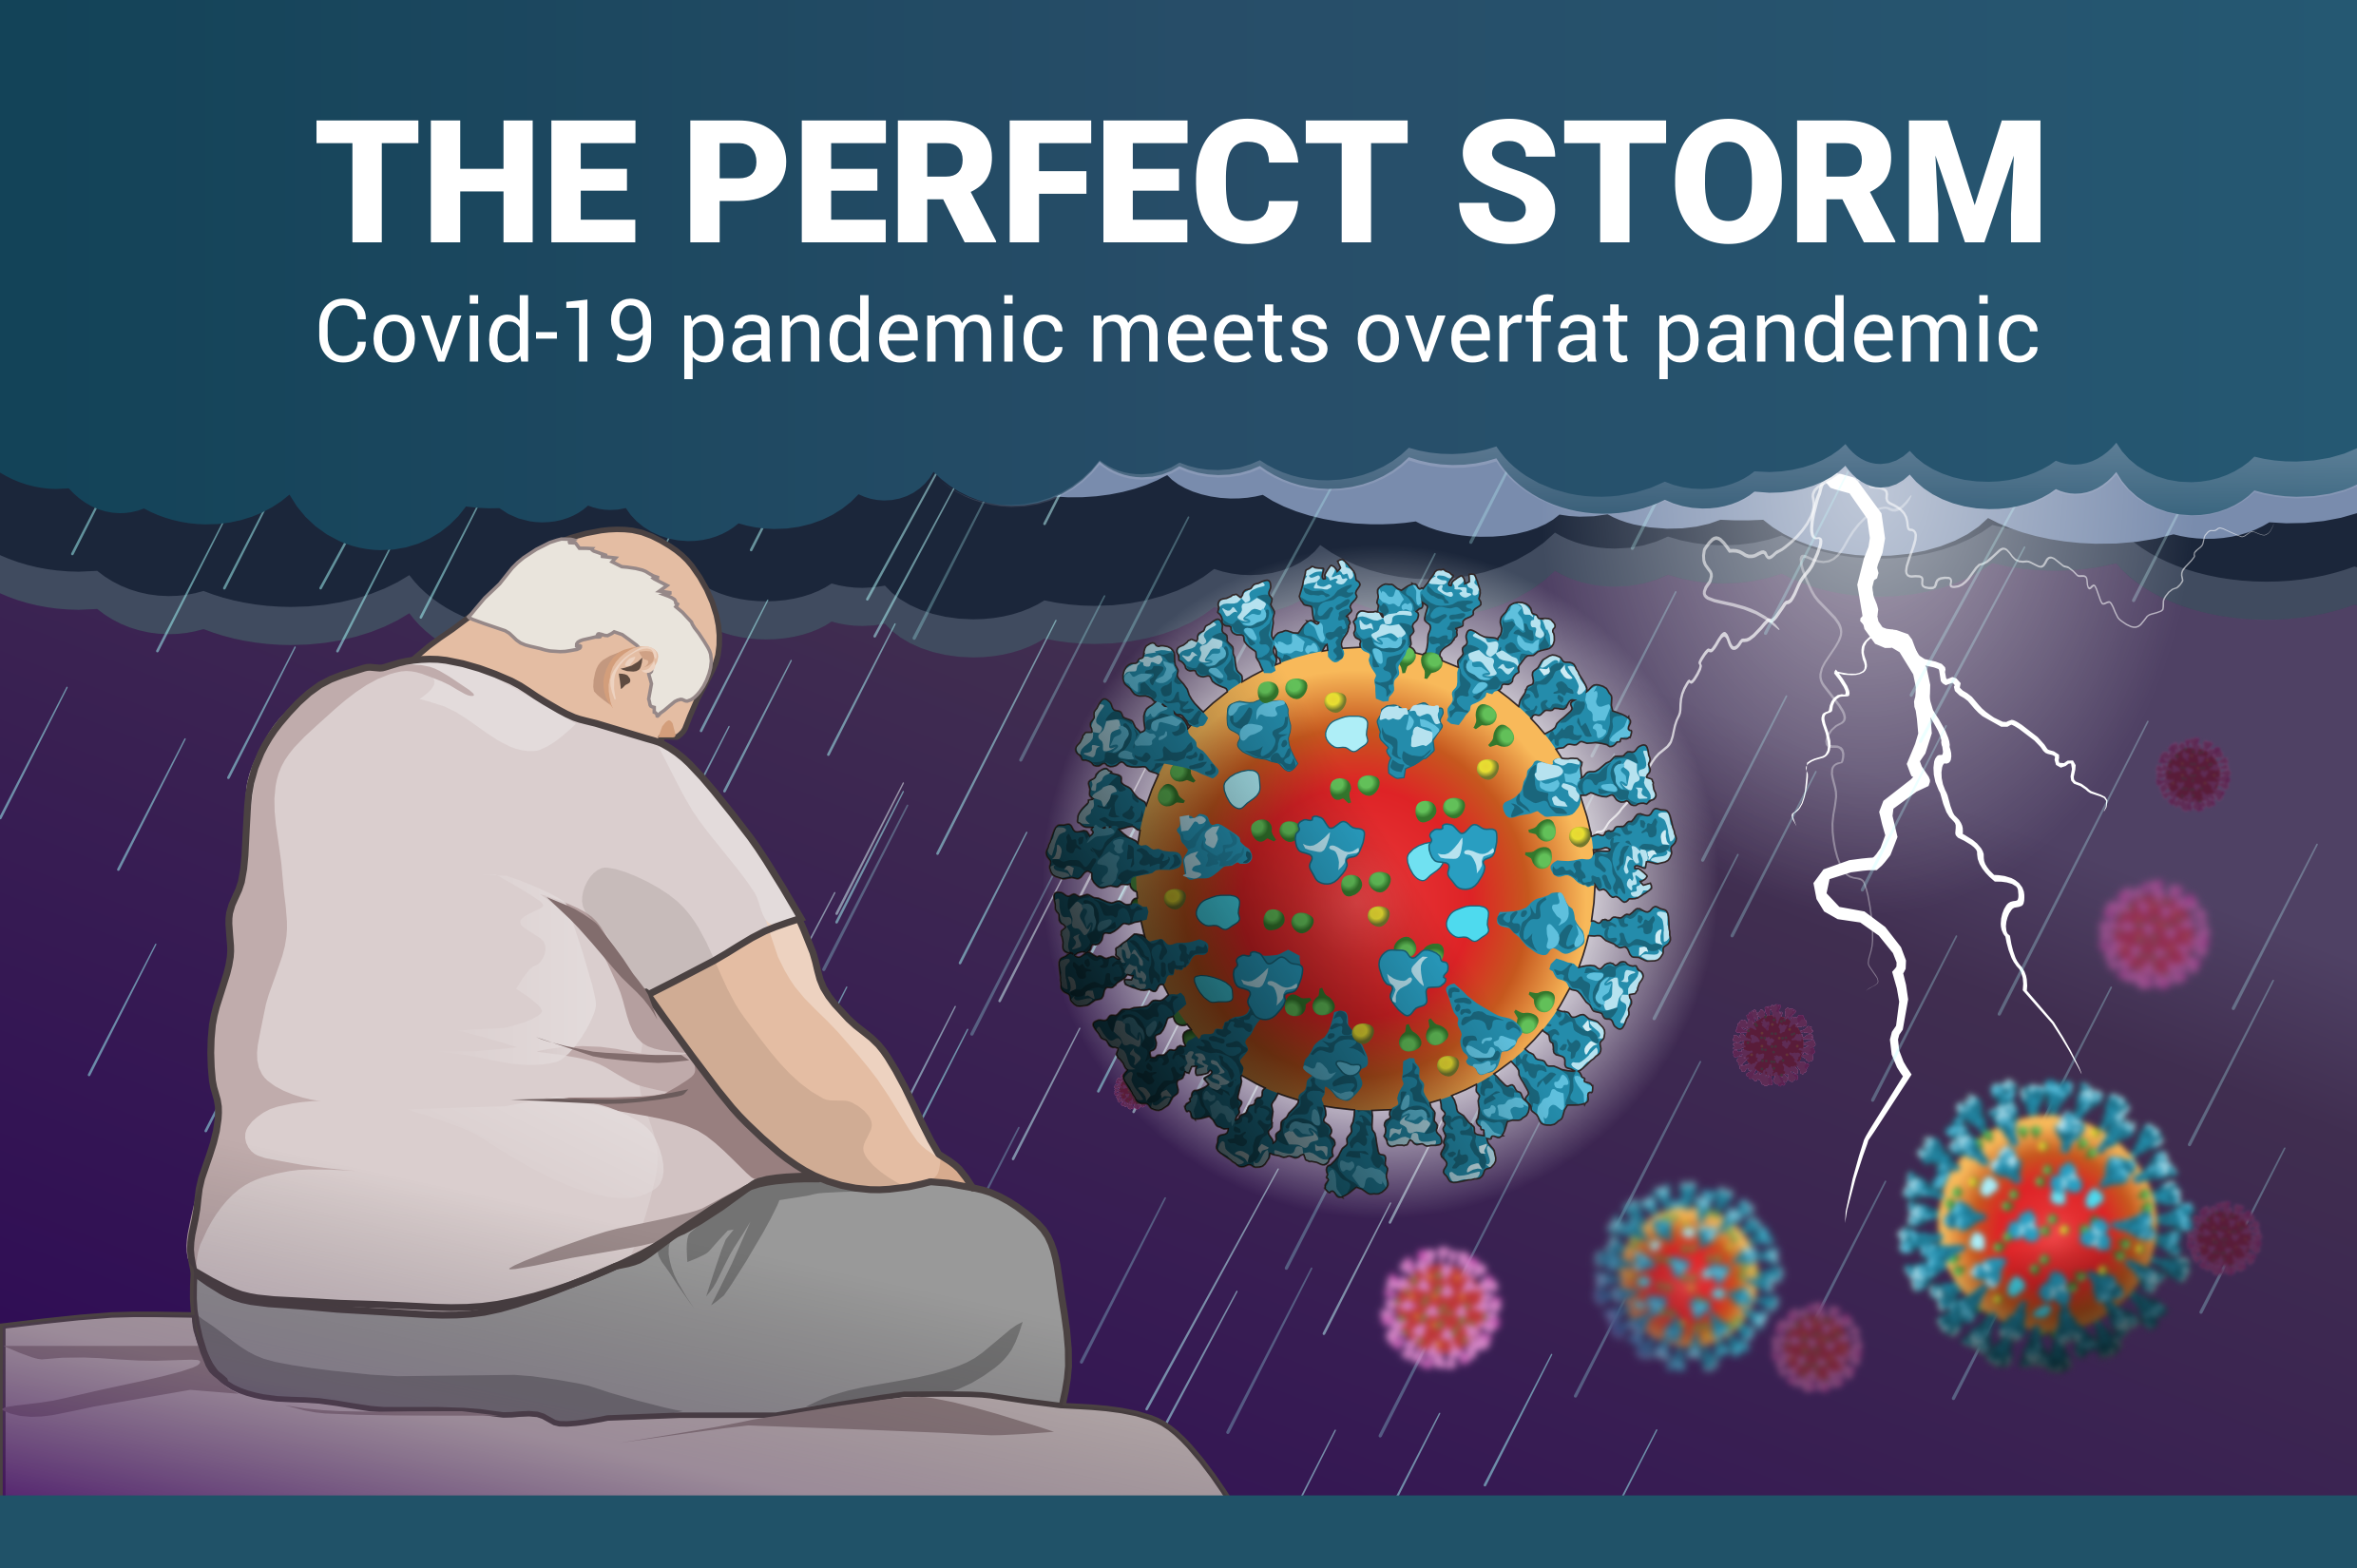 The Perfect Storm: Covid-19 pandemic meets overfat pandemic